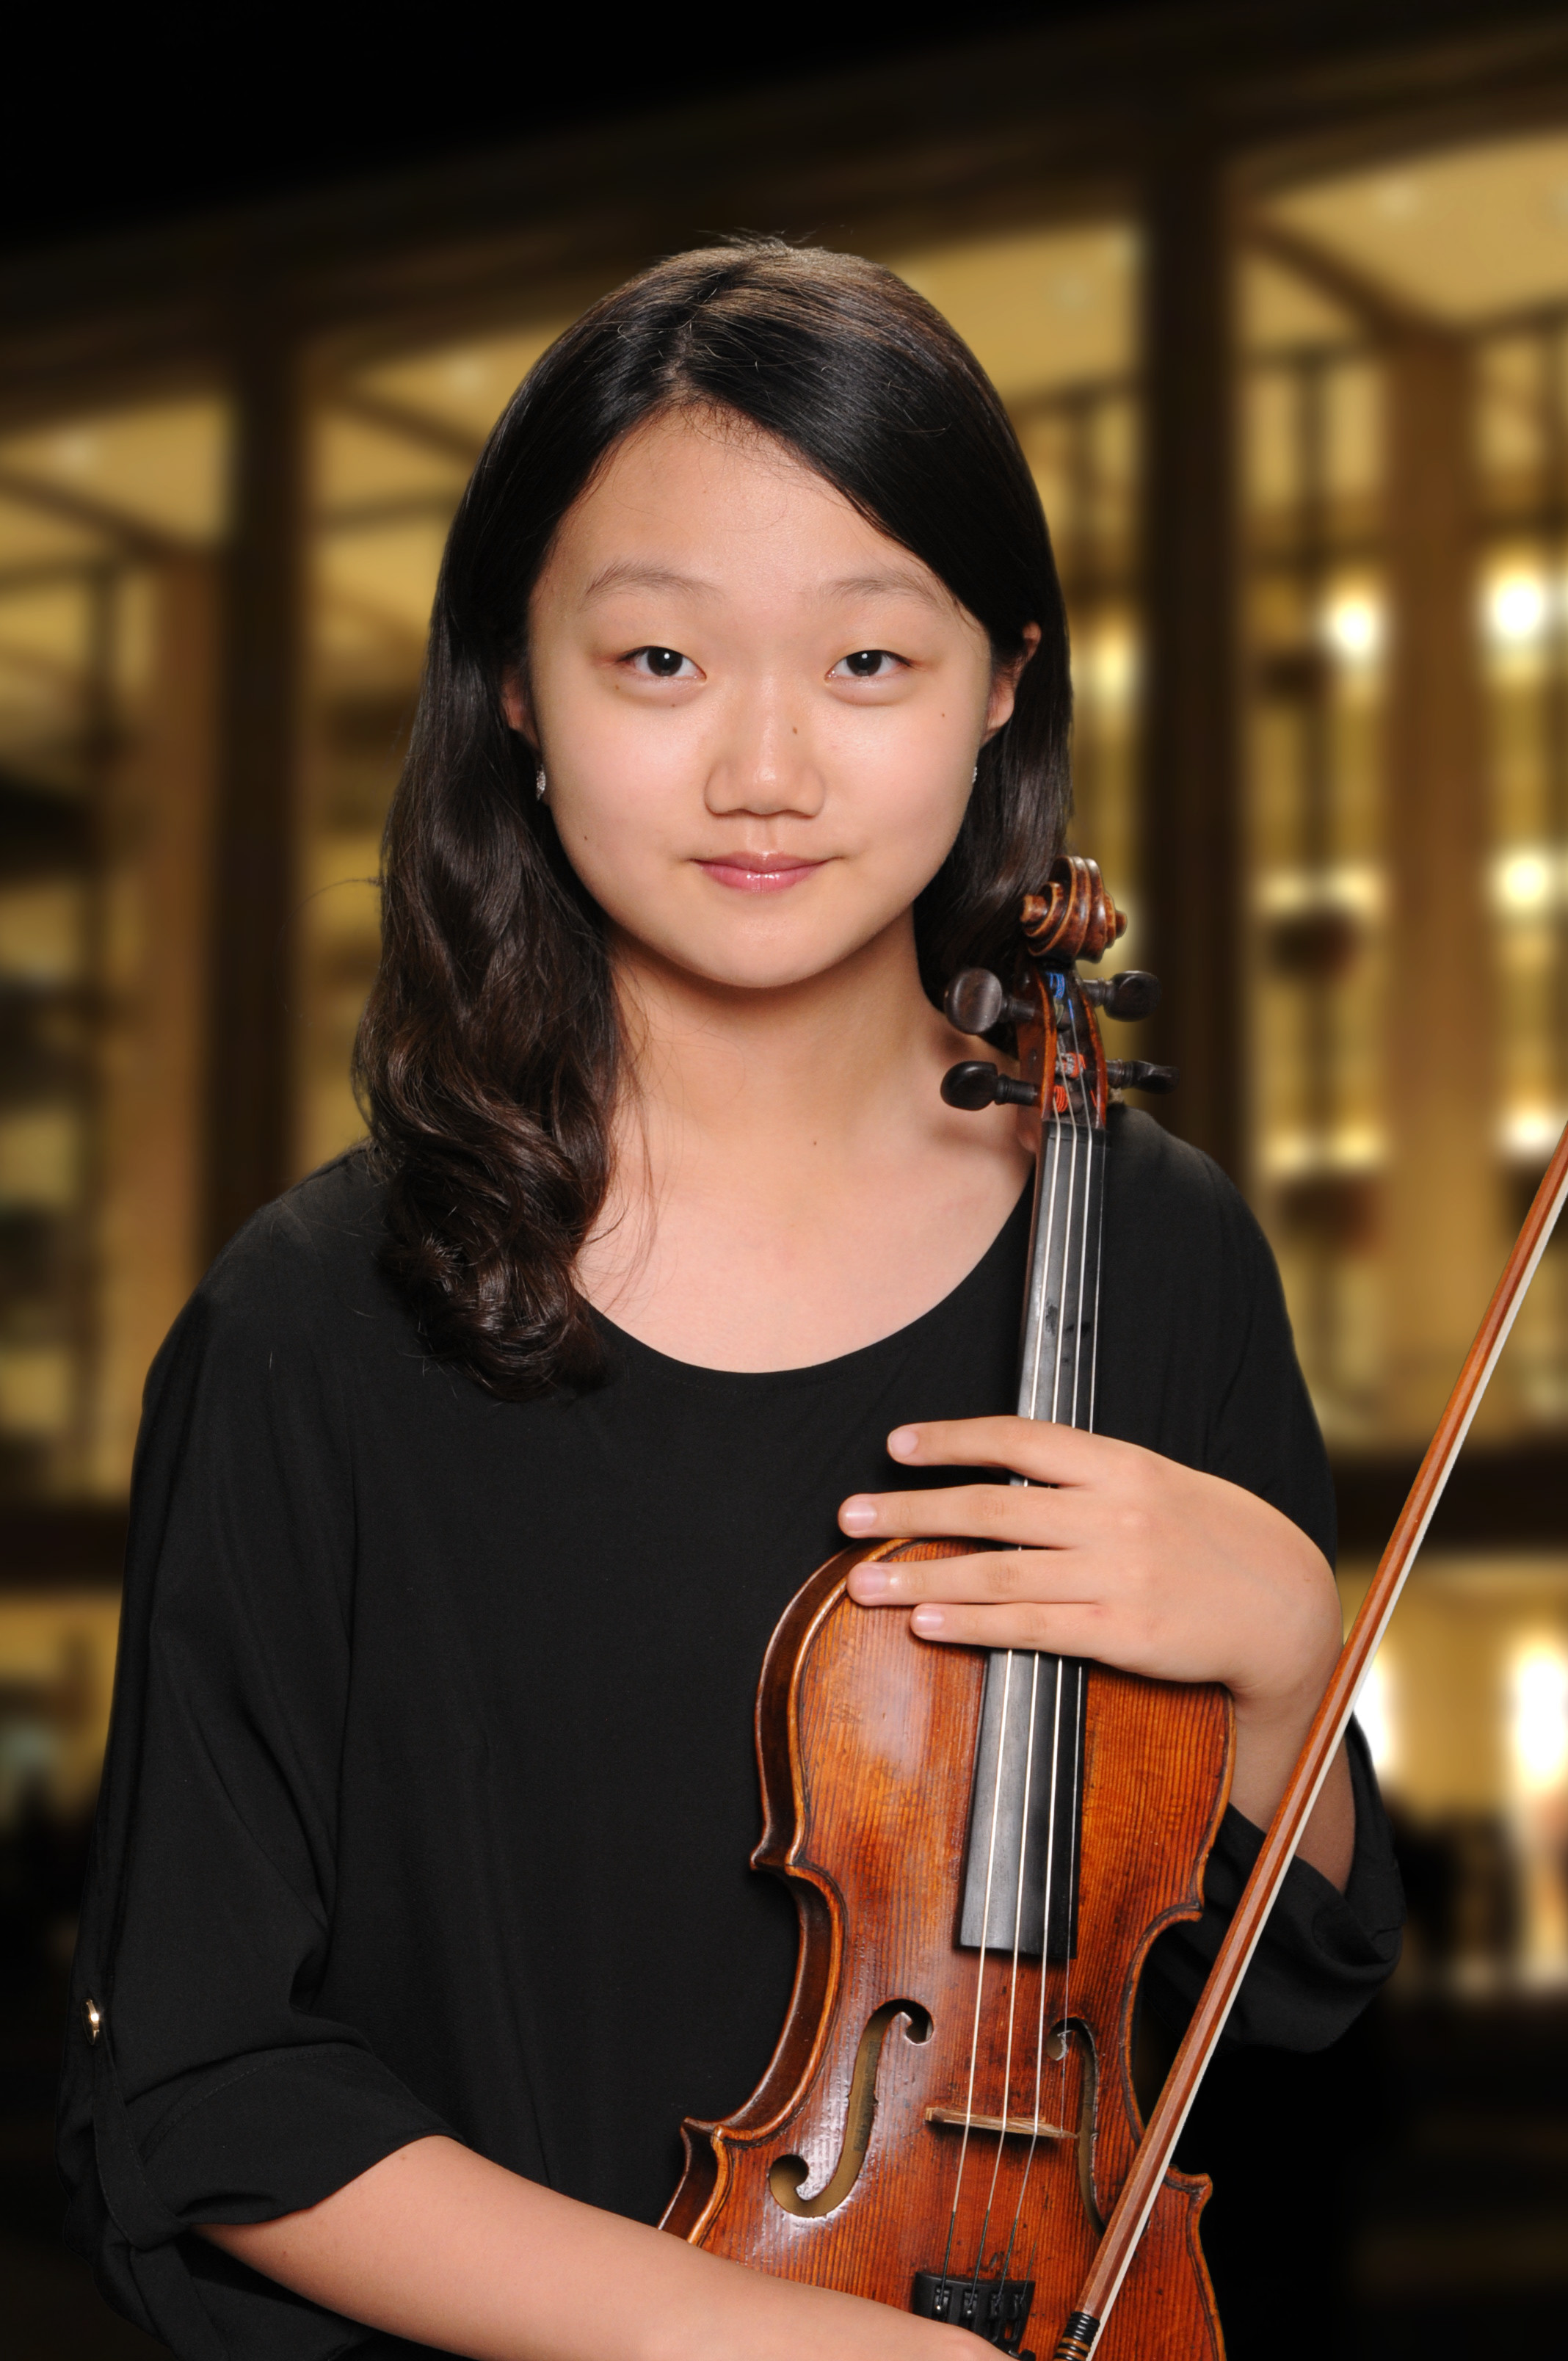 2nd Prize    Serin Isabelle Park  is a fifth year student at Juilliard Pre-college studying with Catherine Cho. Born in NYC, Serin began her violin studies at the age of five with Solim Shin. Serin has performed in prestigious halls throughout New York, Virginia, Philadelphia, Germany and Switzerland. Solo appearances include performances with Allentown Symphony Orchestra with conductor Diane Wittry, Orchestra of Camerata, and Concert Festival Orchestra. As winner of Juilliard Pre-college concerto competition, she performed as soloist with Precollege String Ensemble with conductor Radu Paponiu. She also had Masterclass with Ilya Gringolts in Geneva. Recipient of the United States President's Award for Academic Excellence, Serin is 9th grader who enjoys reading in her free time.